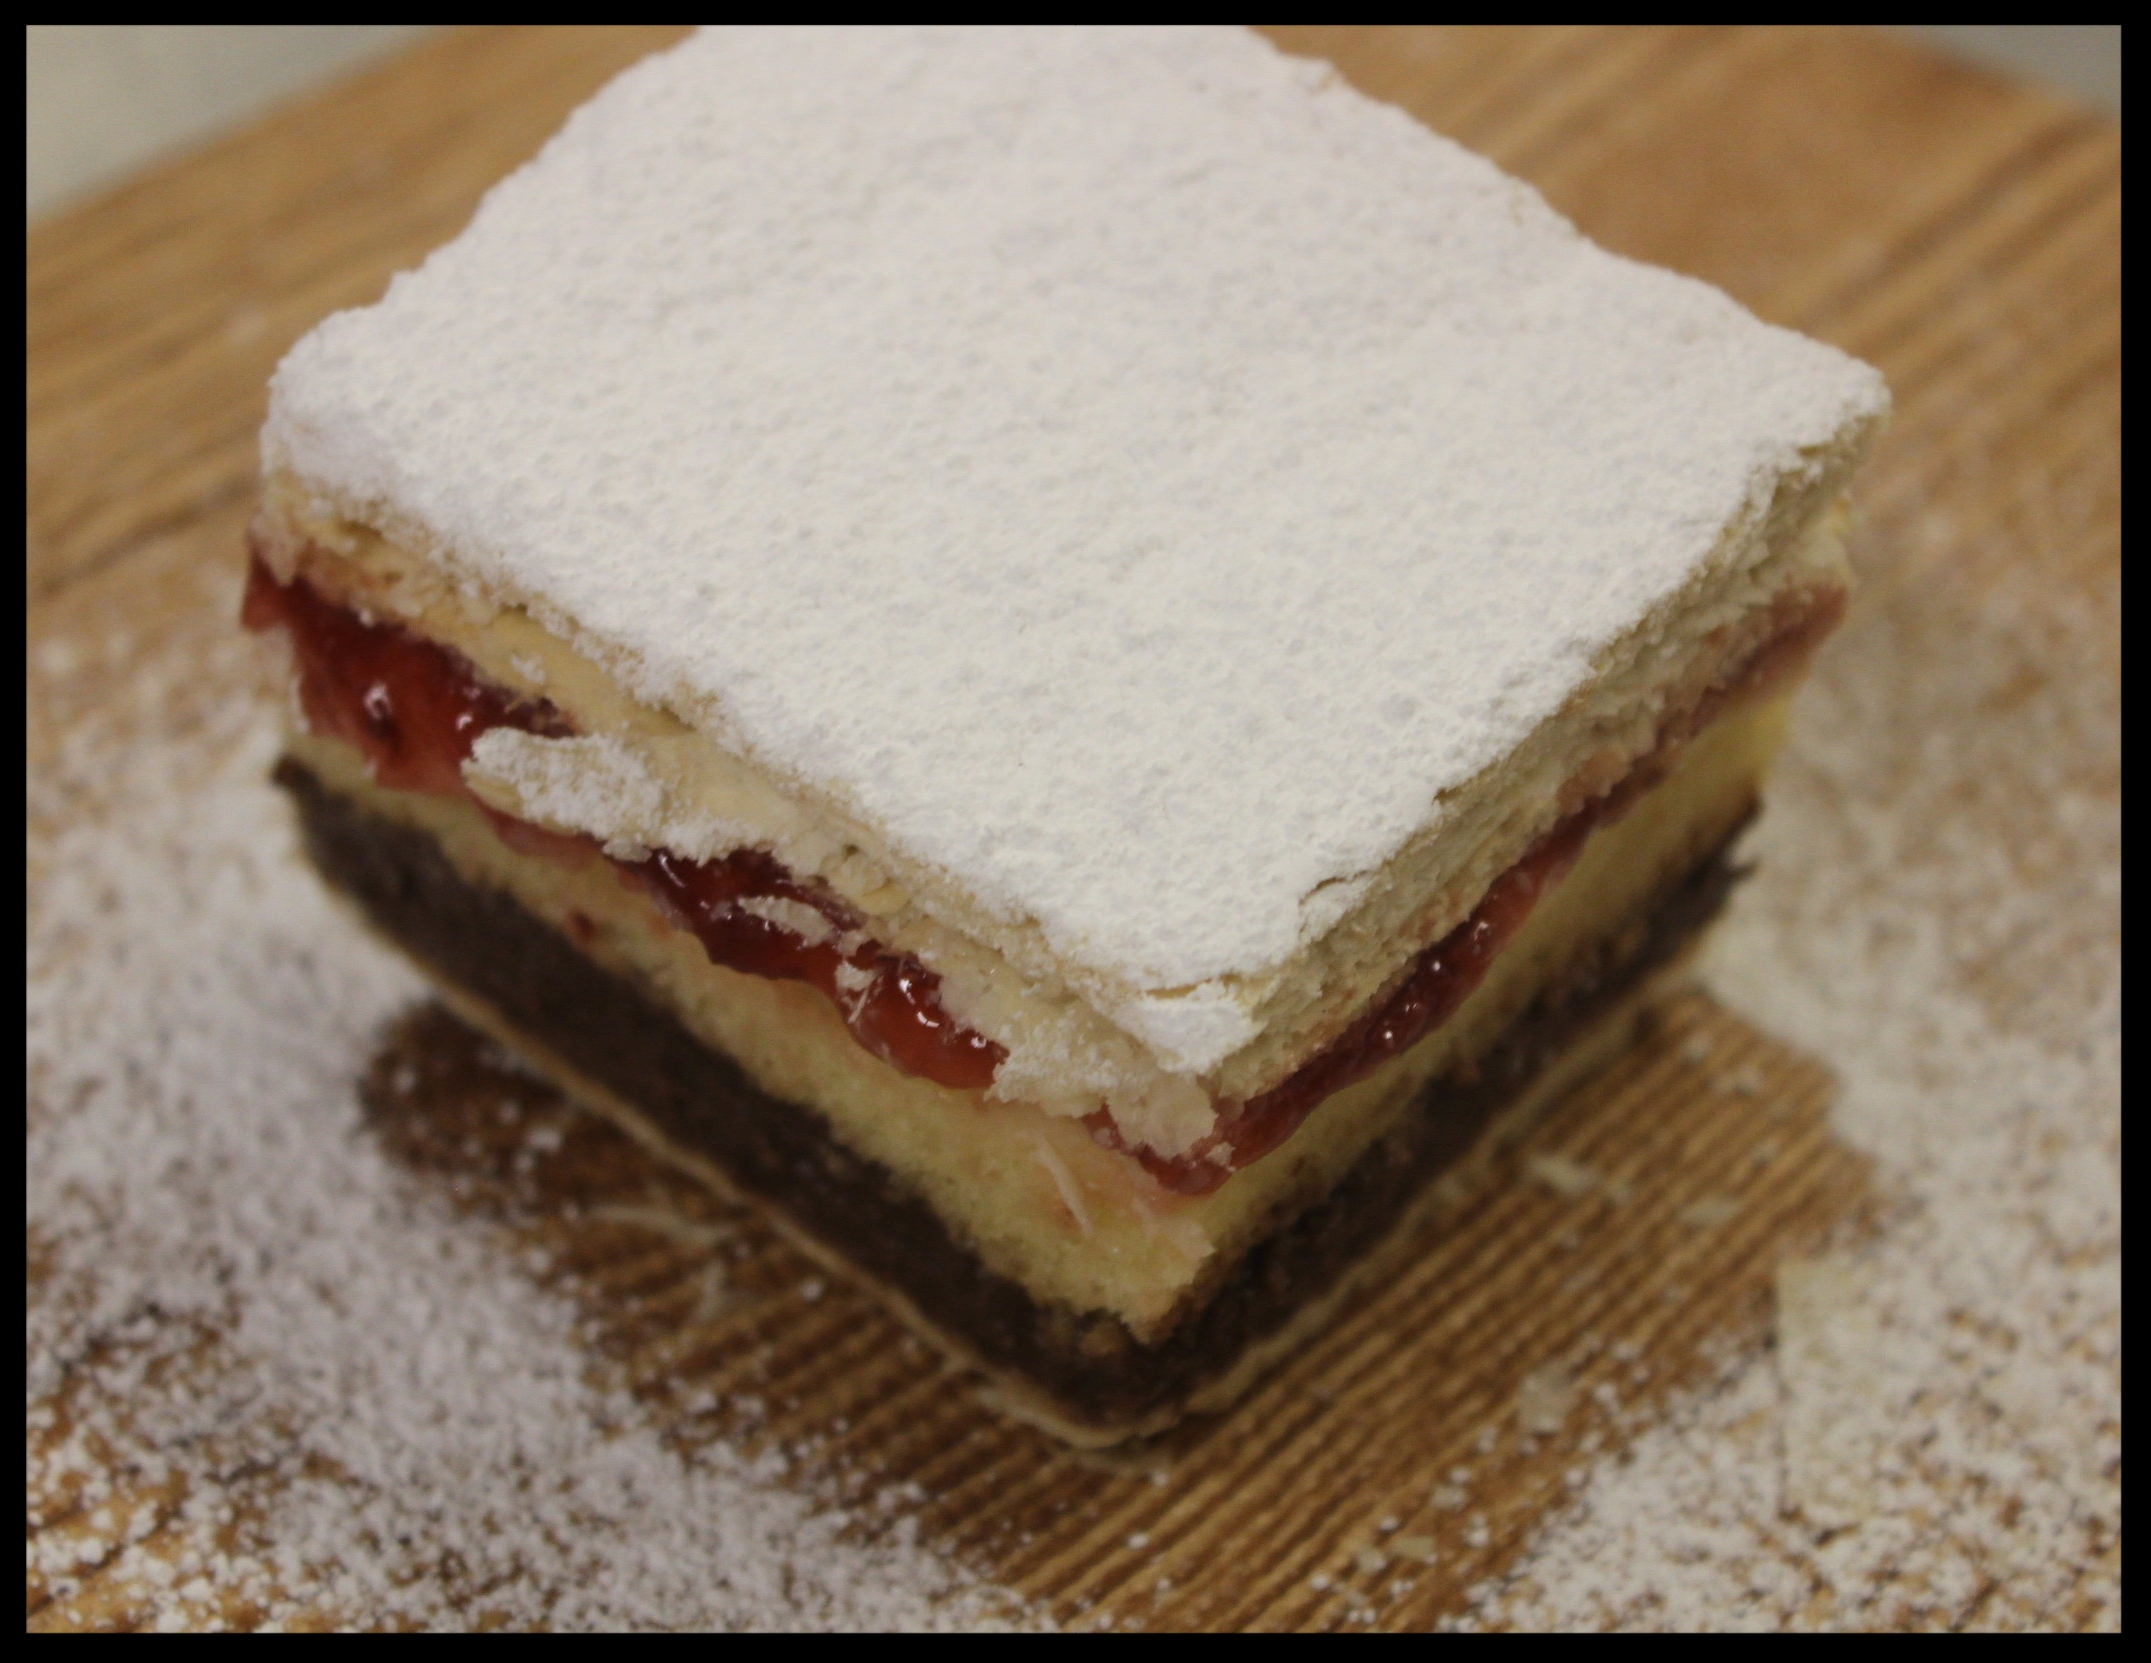 Rum Napolean - Rum soaked sponge cake with chocolate and vanilla cream and strawberries, in between puff pastry dough layers. Oh and powdered sugar all over the top.